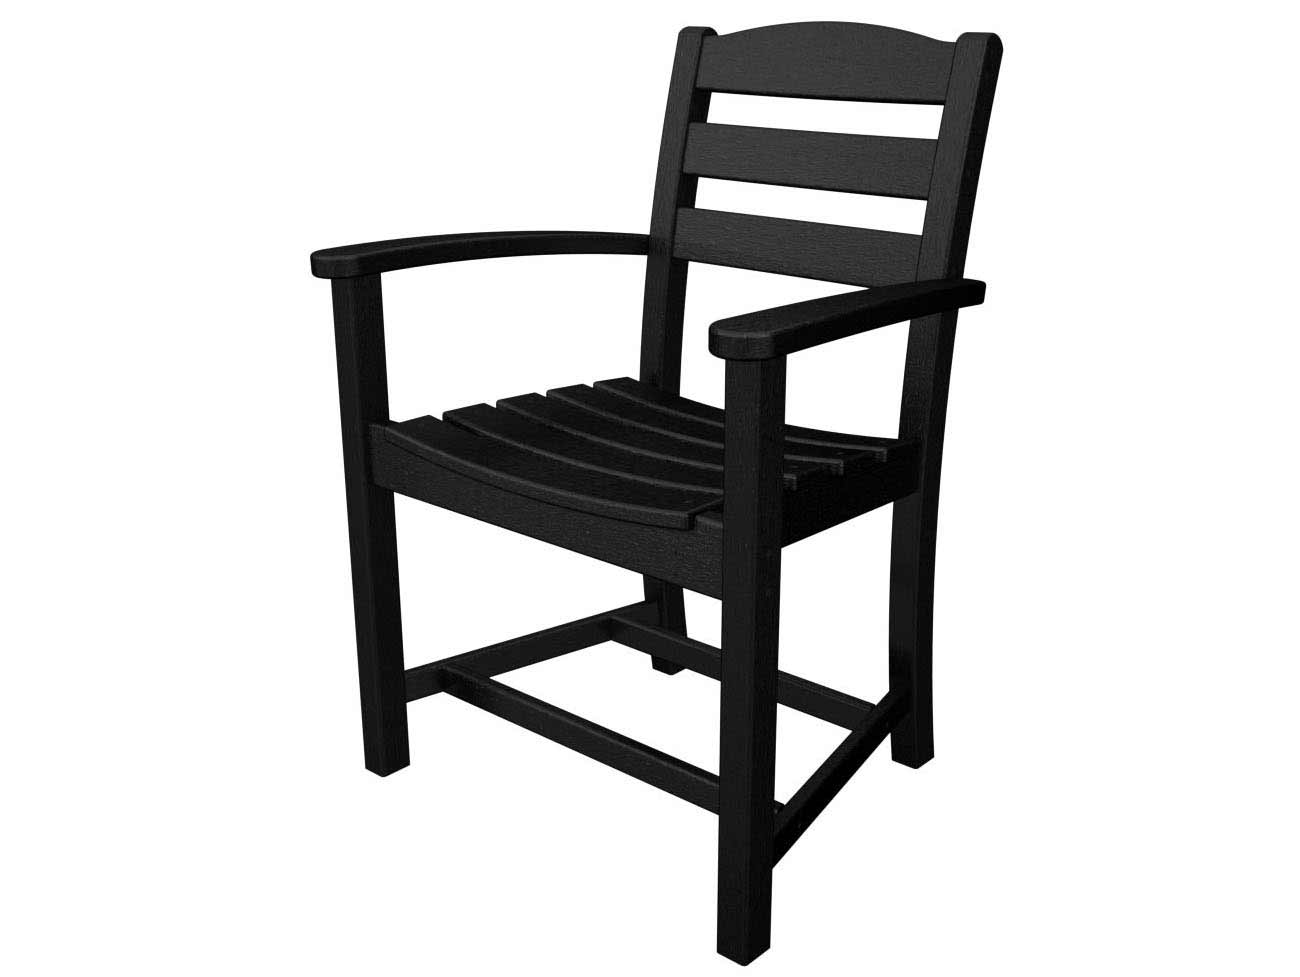 Best-selling La-Casa-Cafe-Dining-Arm-Chair Product Image 2245